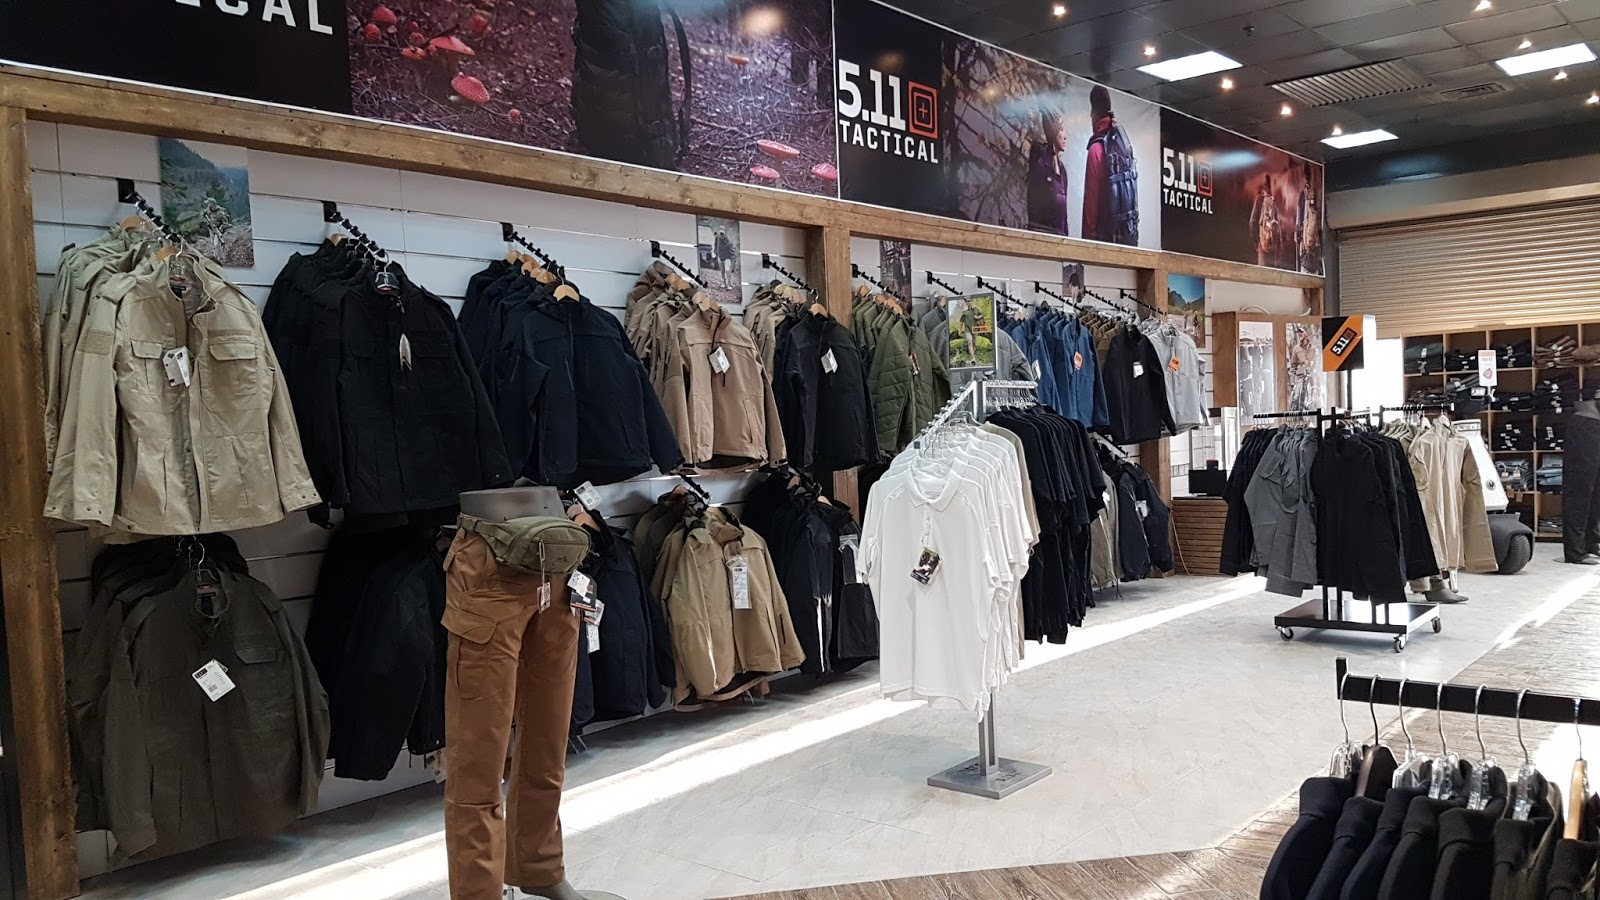 title>511 Tactical Kuwait Location | Life in Kuwait